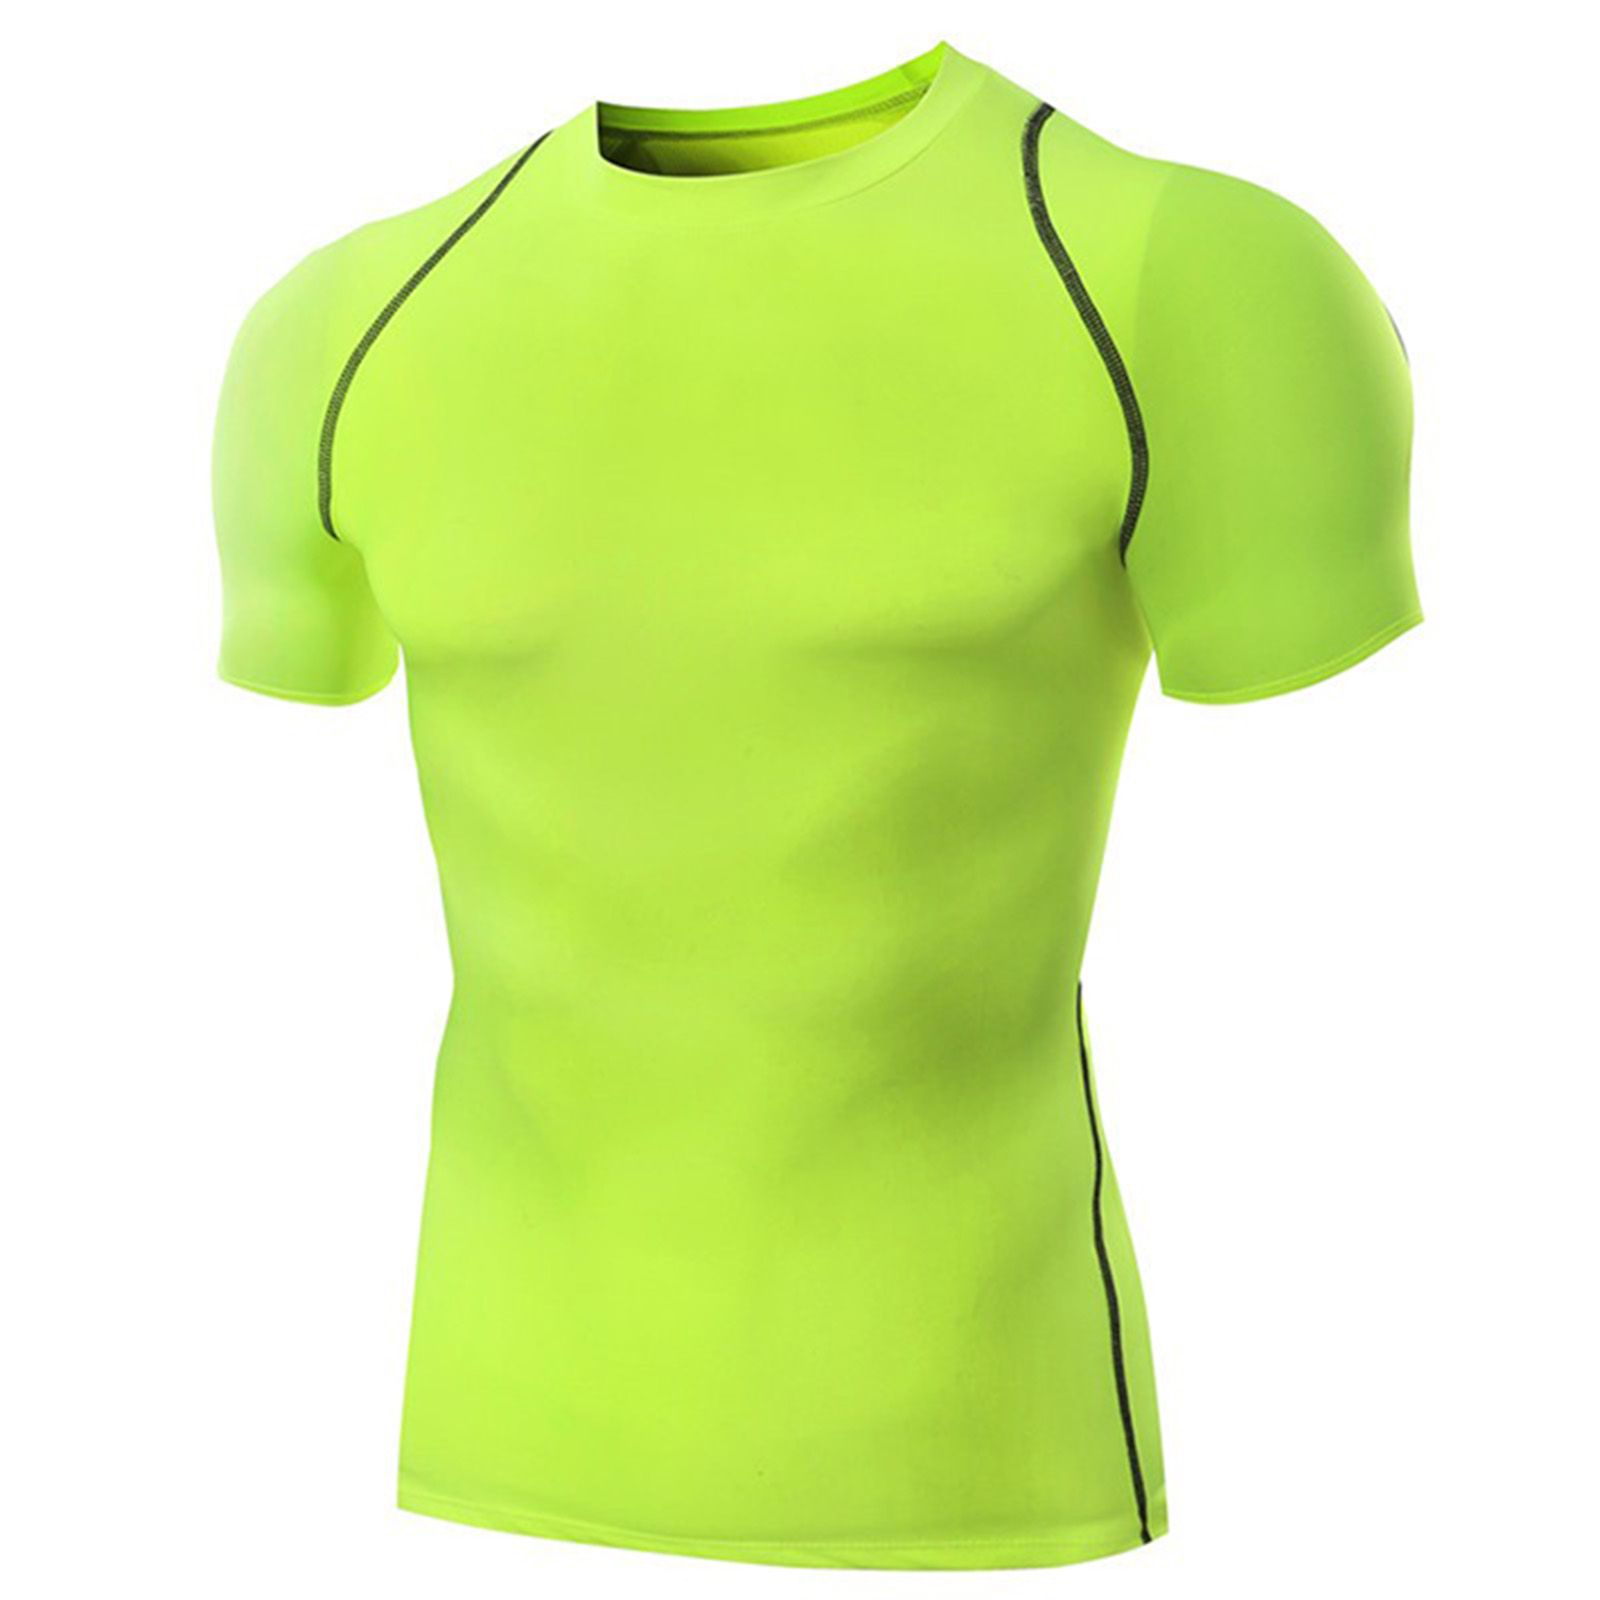 Zesteez Neon Green Strtechable Lycra Fabric Gym|| Activewear||sportswear||Premium Quality Fabric Tshirt